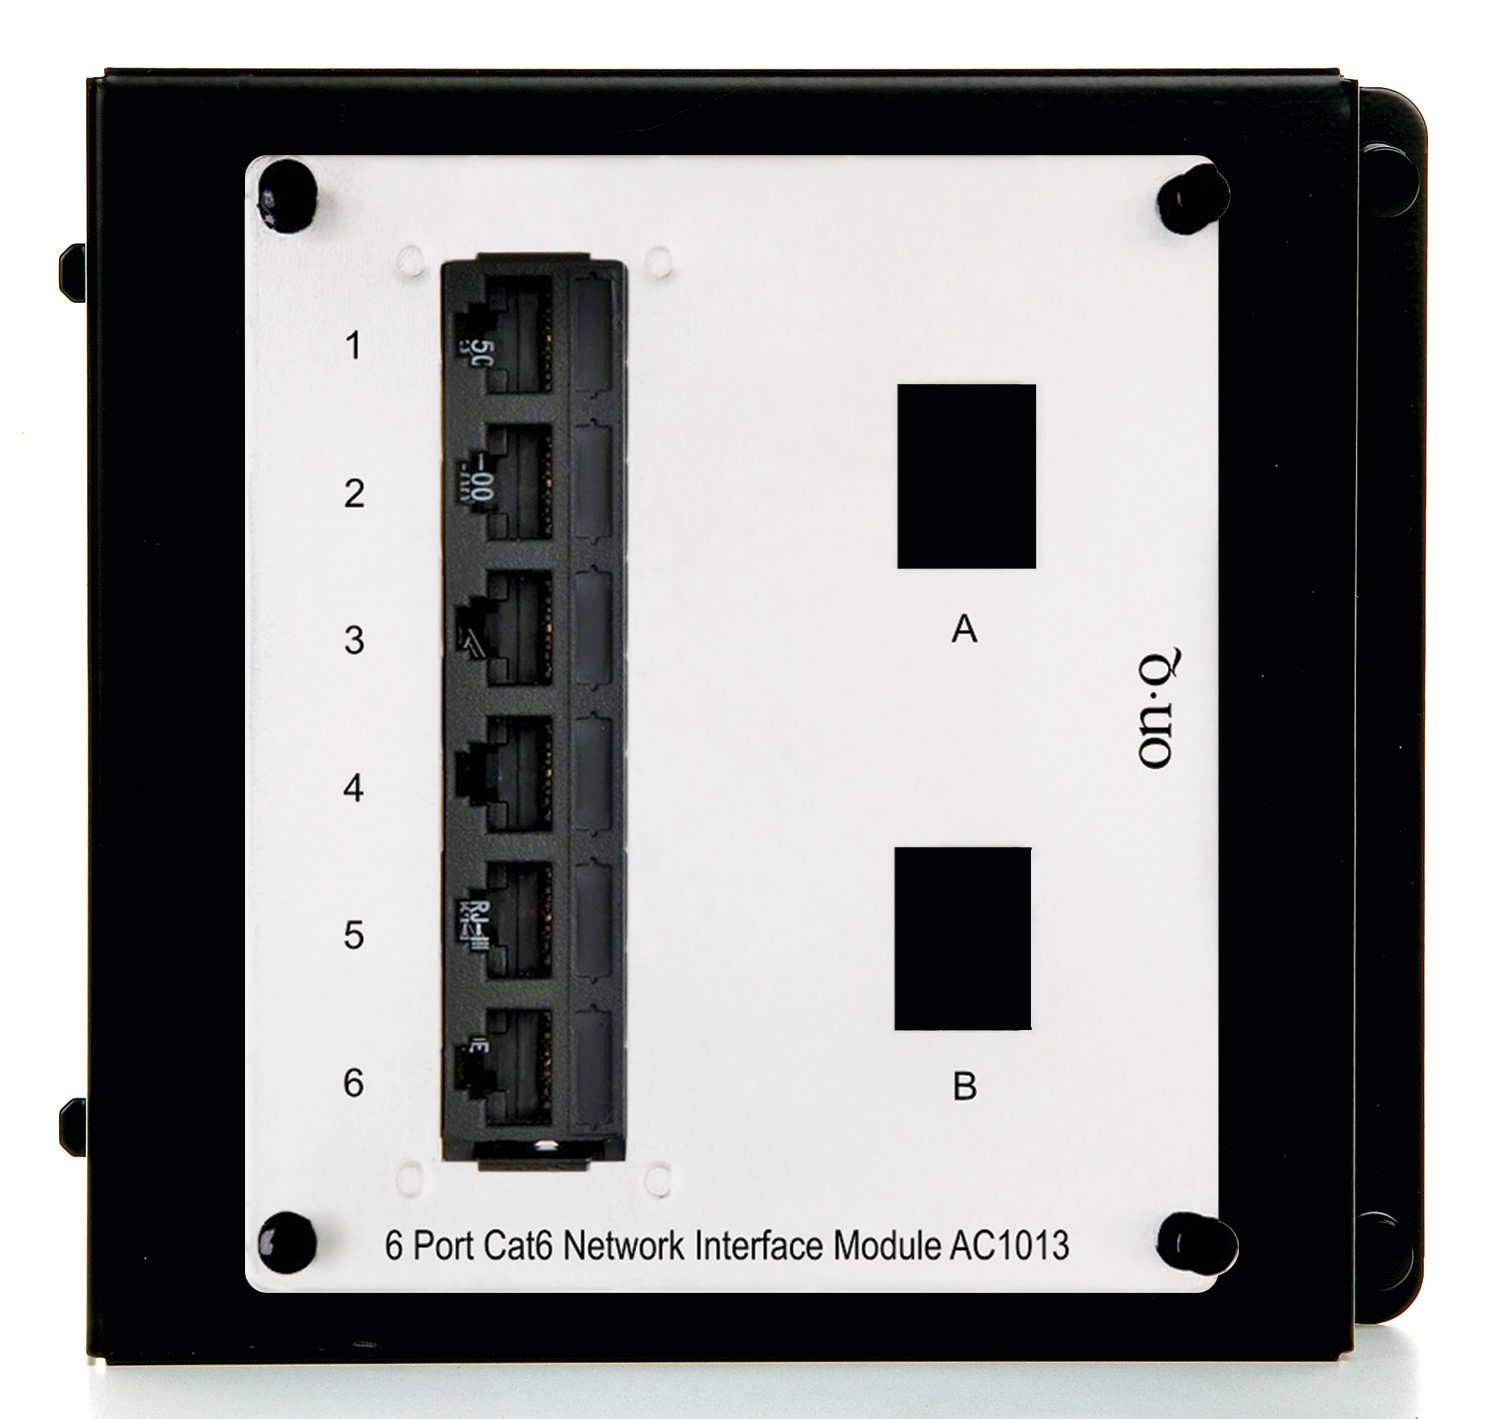 Cat 6 Wiring Diagram For Wall Plates Legrand 44 Network Jack Sl1500 On Q Ac1015 12port Interface Module